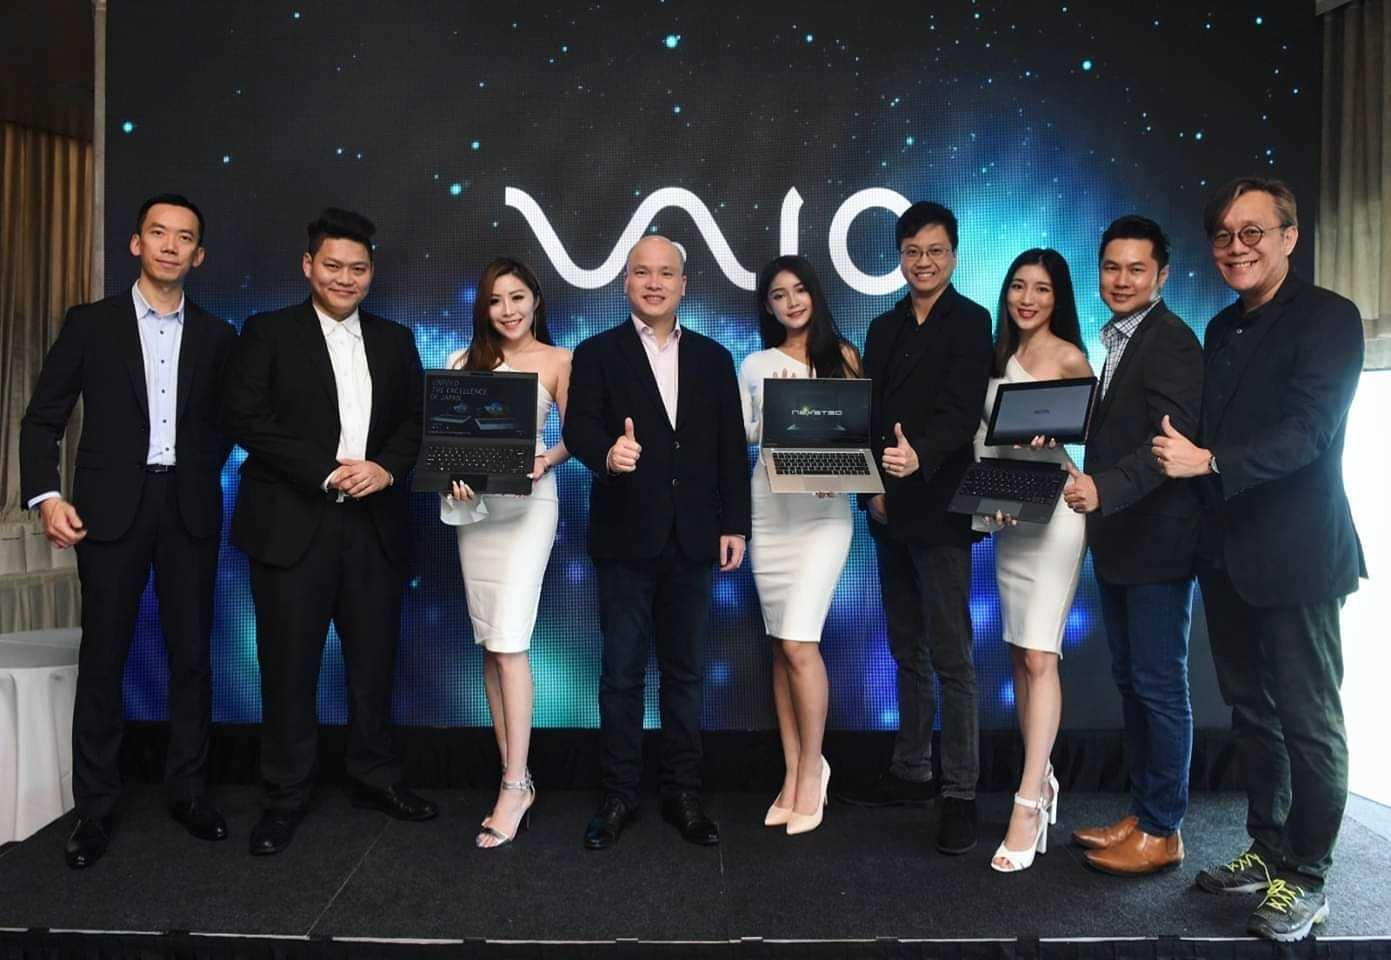 Alex Chung, CEO (4th from left), with other VIPs from Nexstgo.